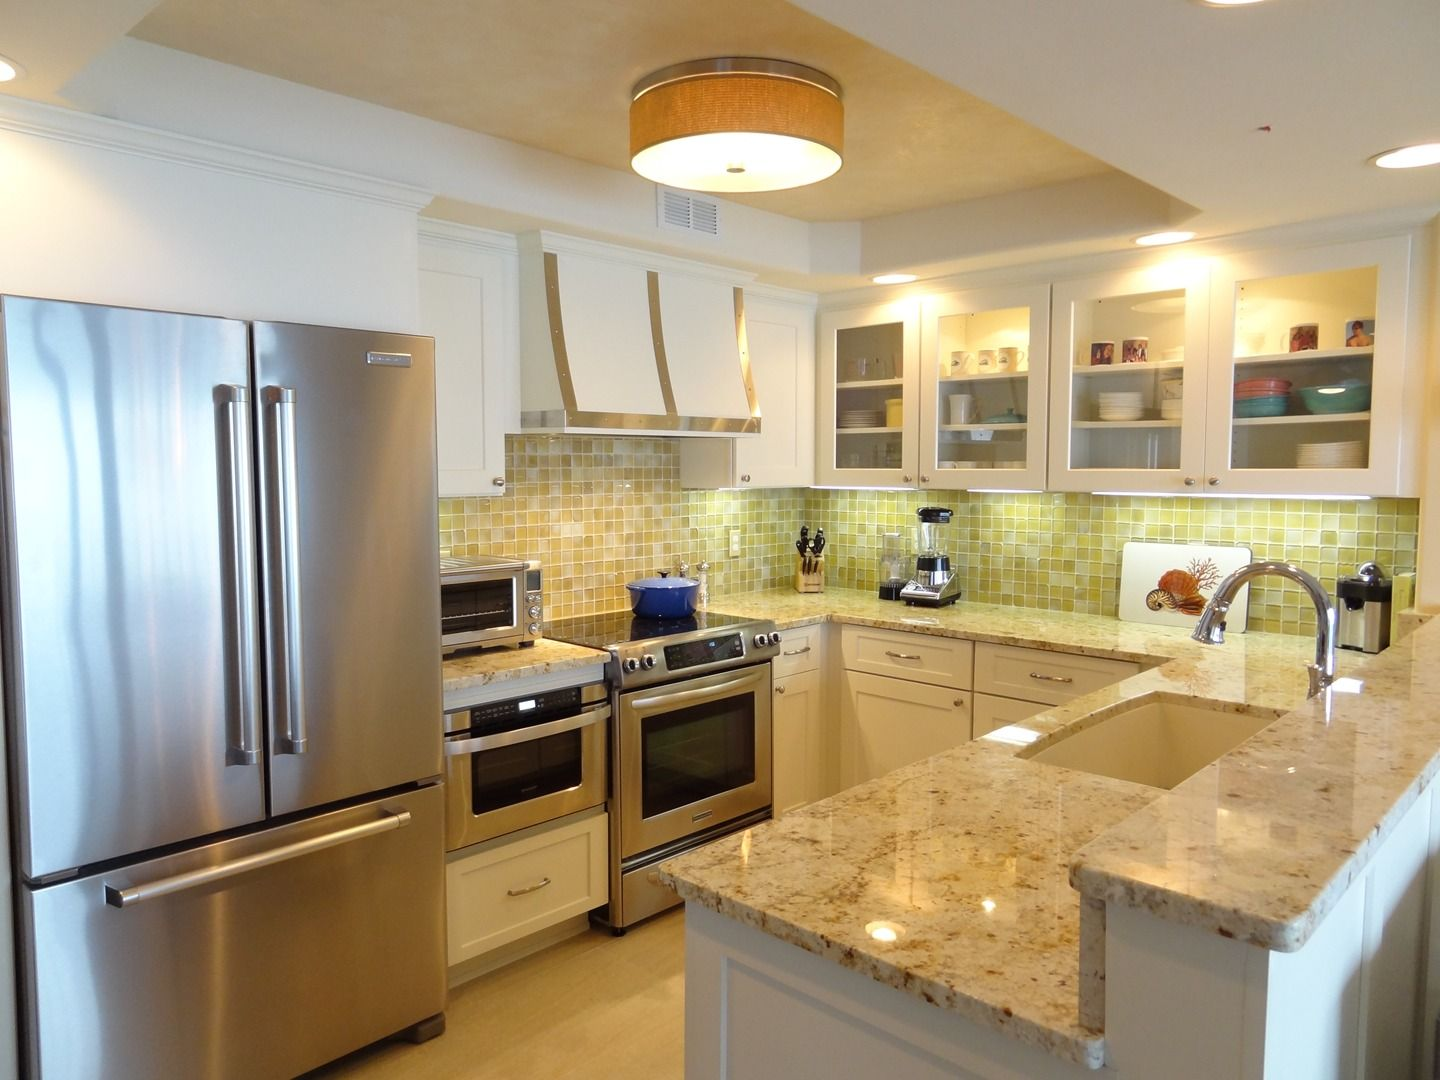 remodeling kitchens and bathrooms alley design to build naples rh pinterest com